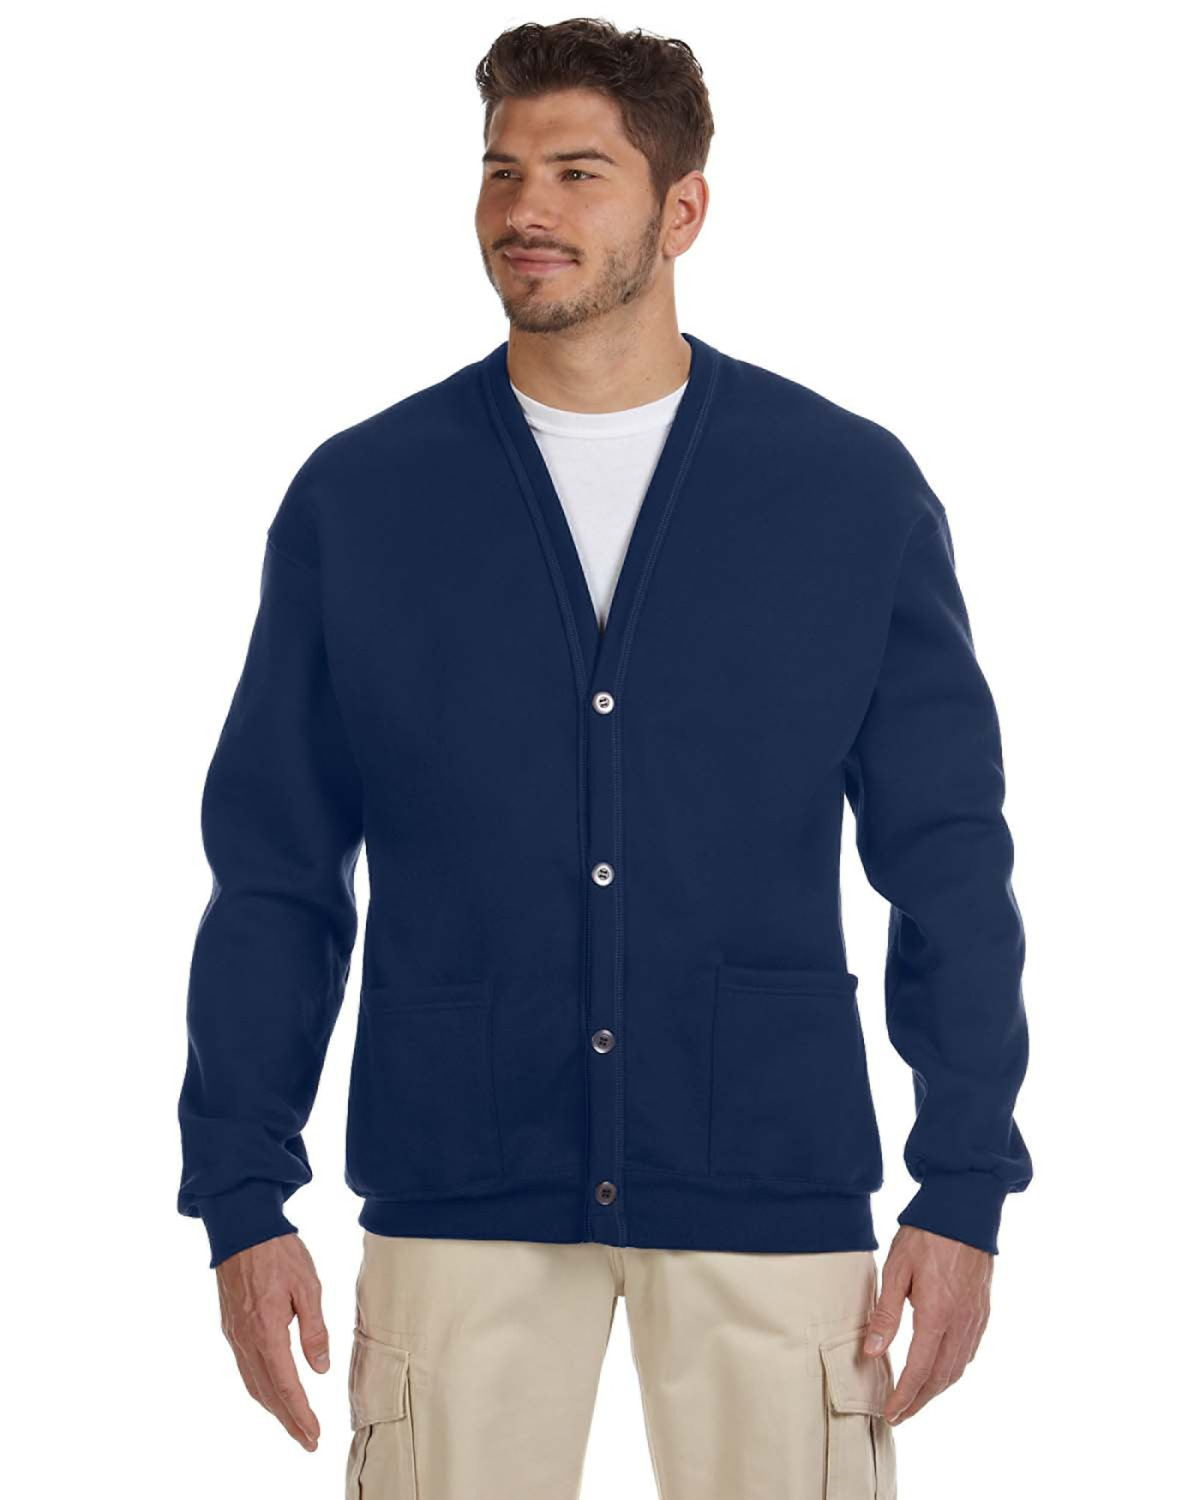 Jerzees 773M - 8 oz., 50/50 NuBlend Cardigan